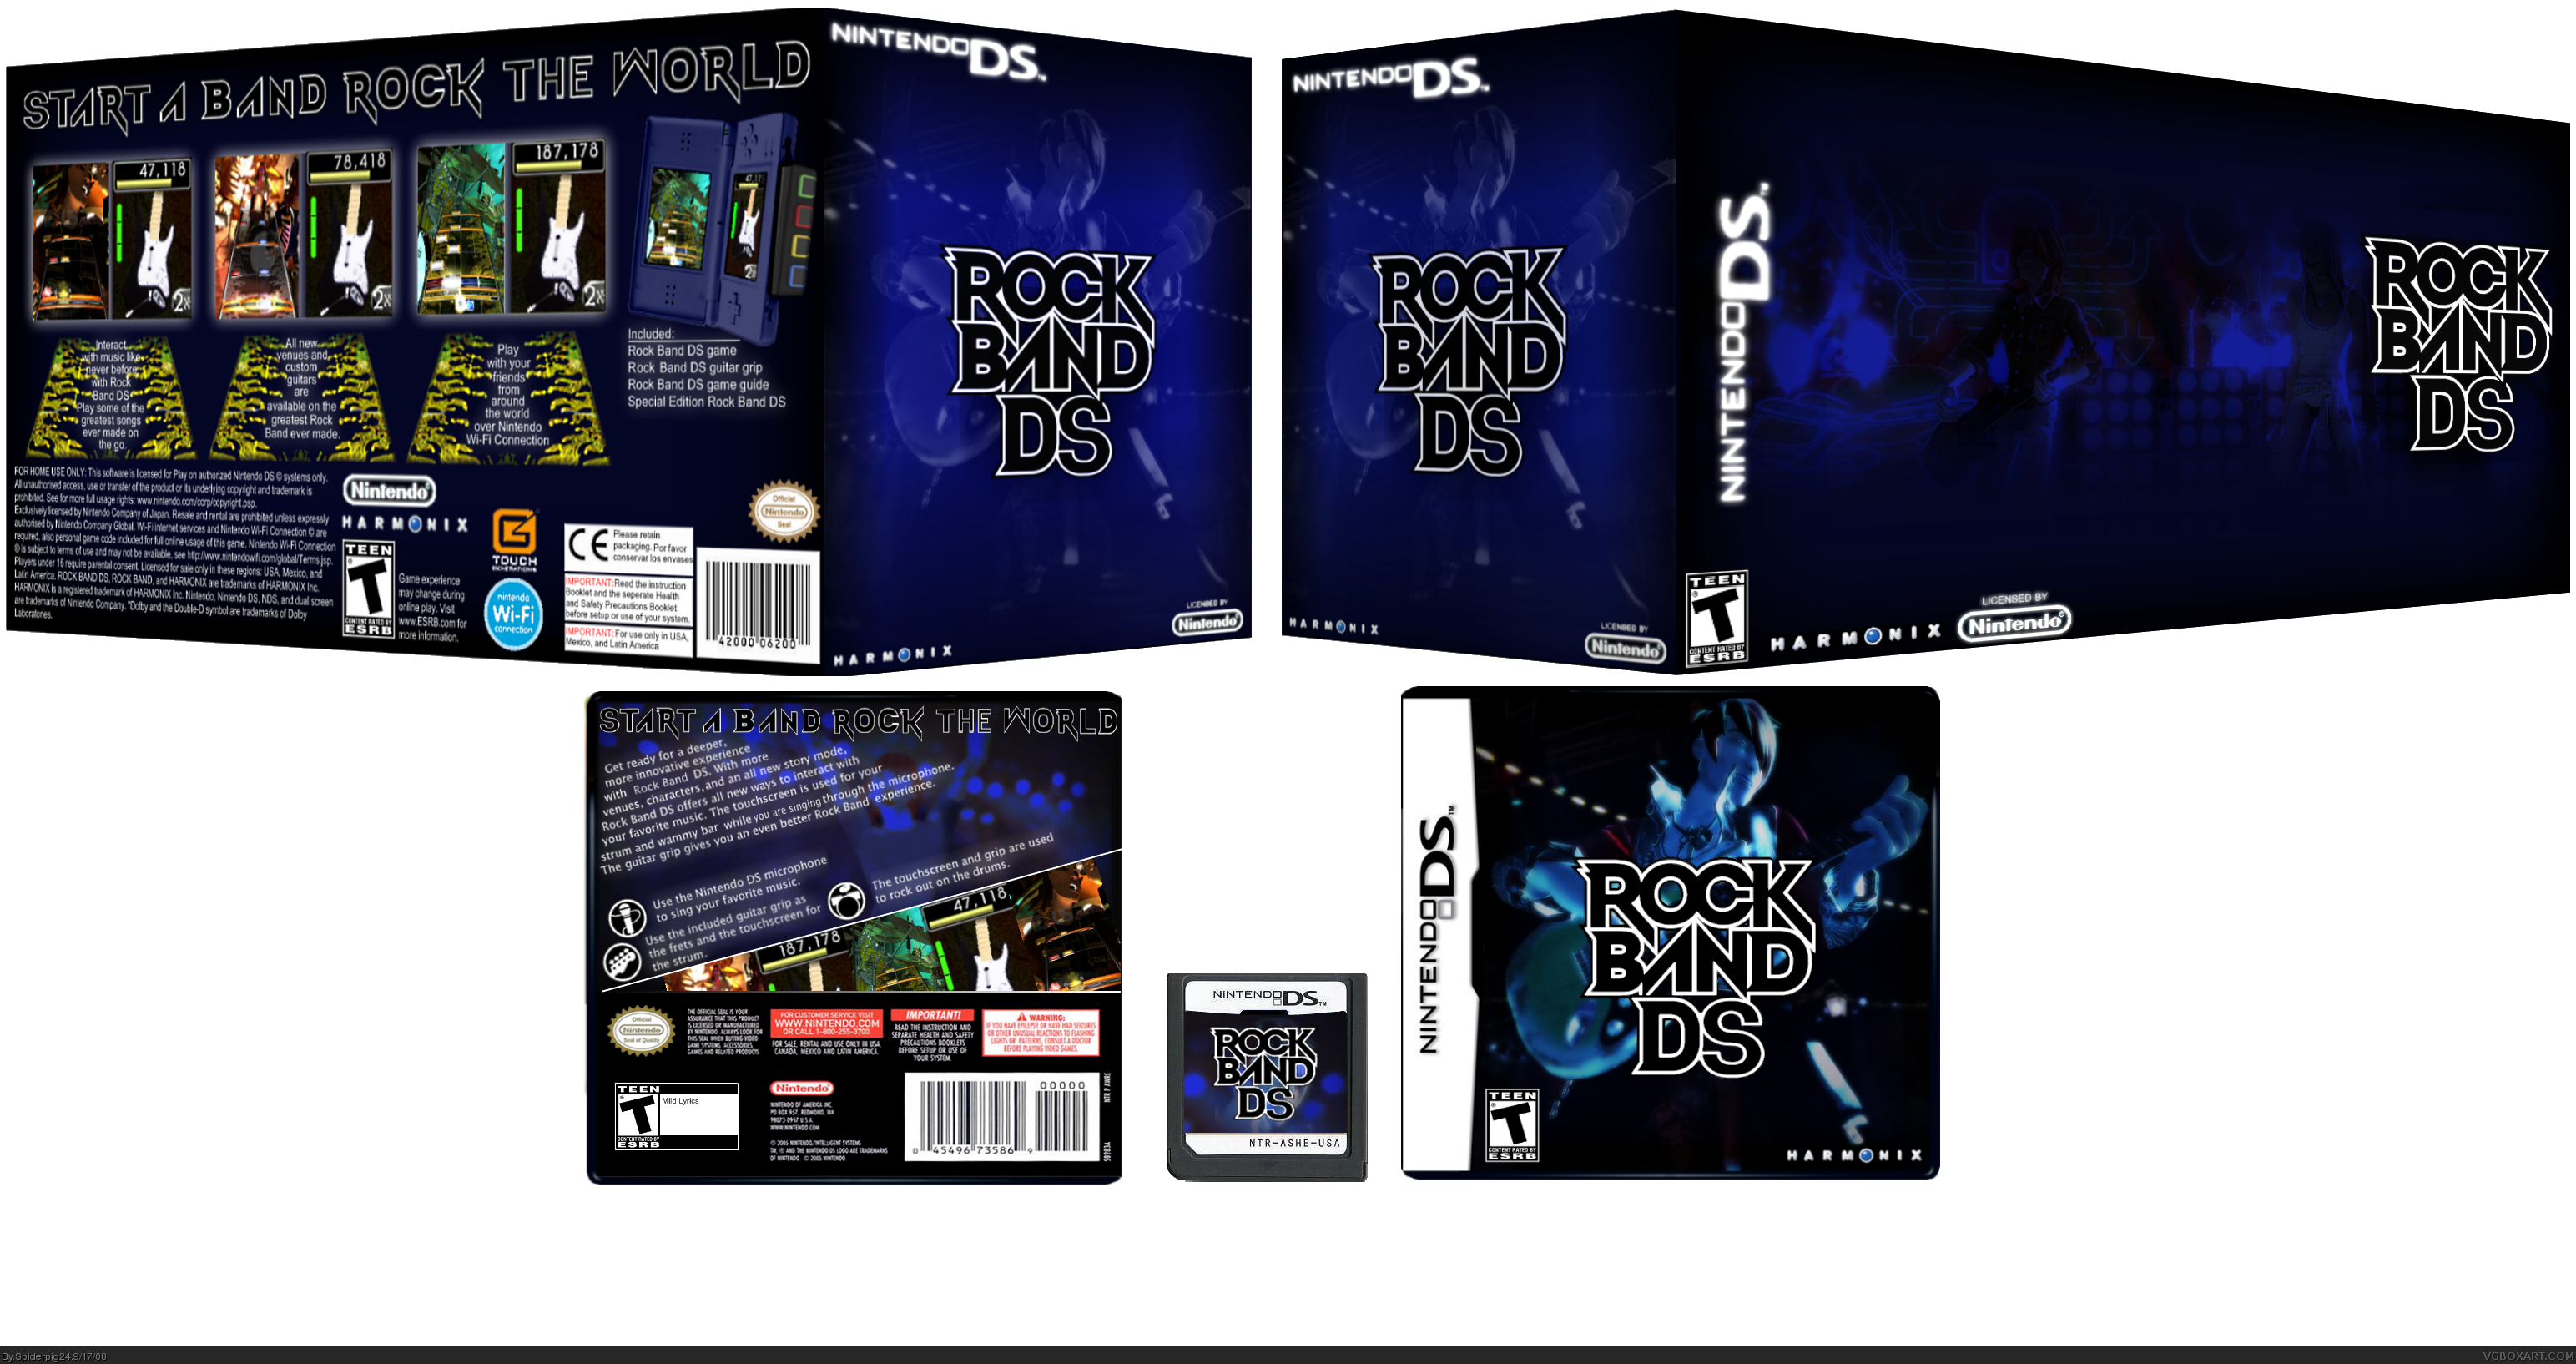 Rock Band Ds Nintendo Ds Box Art Cover By Spiderpig24